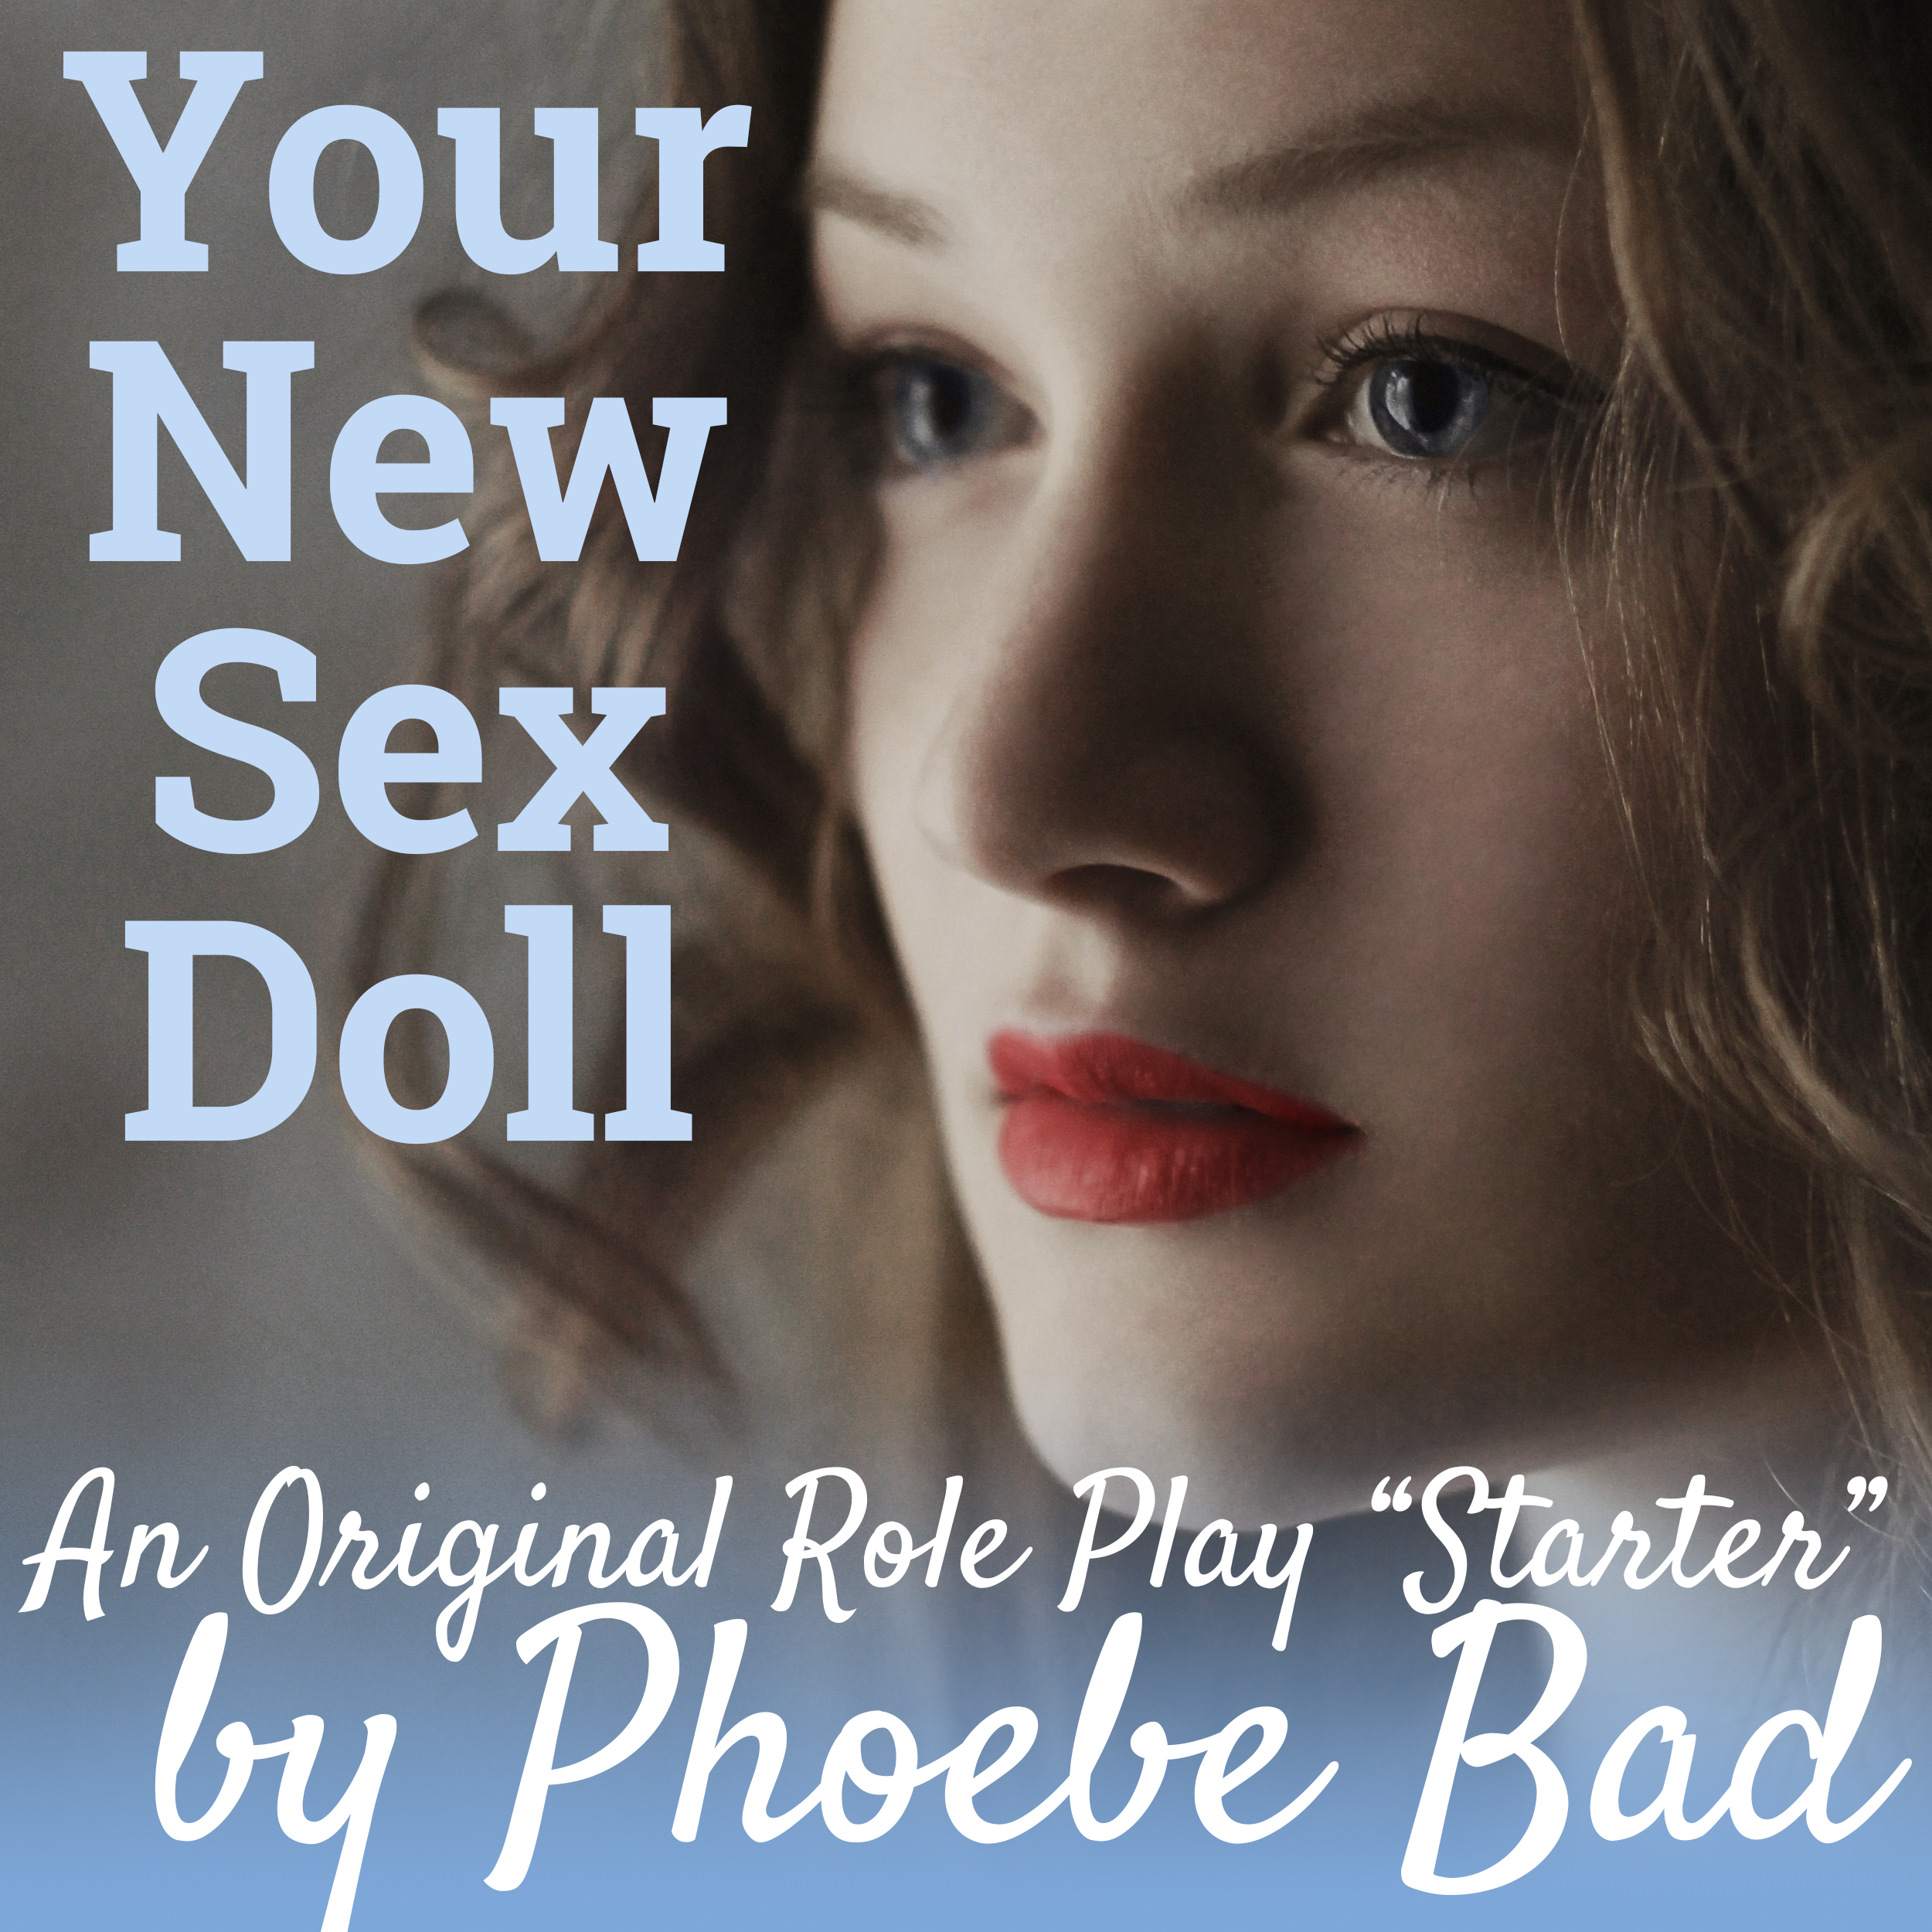 Role Play Starter: Your New Sex Doll(GB)